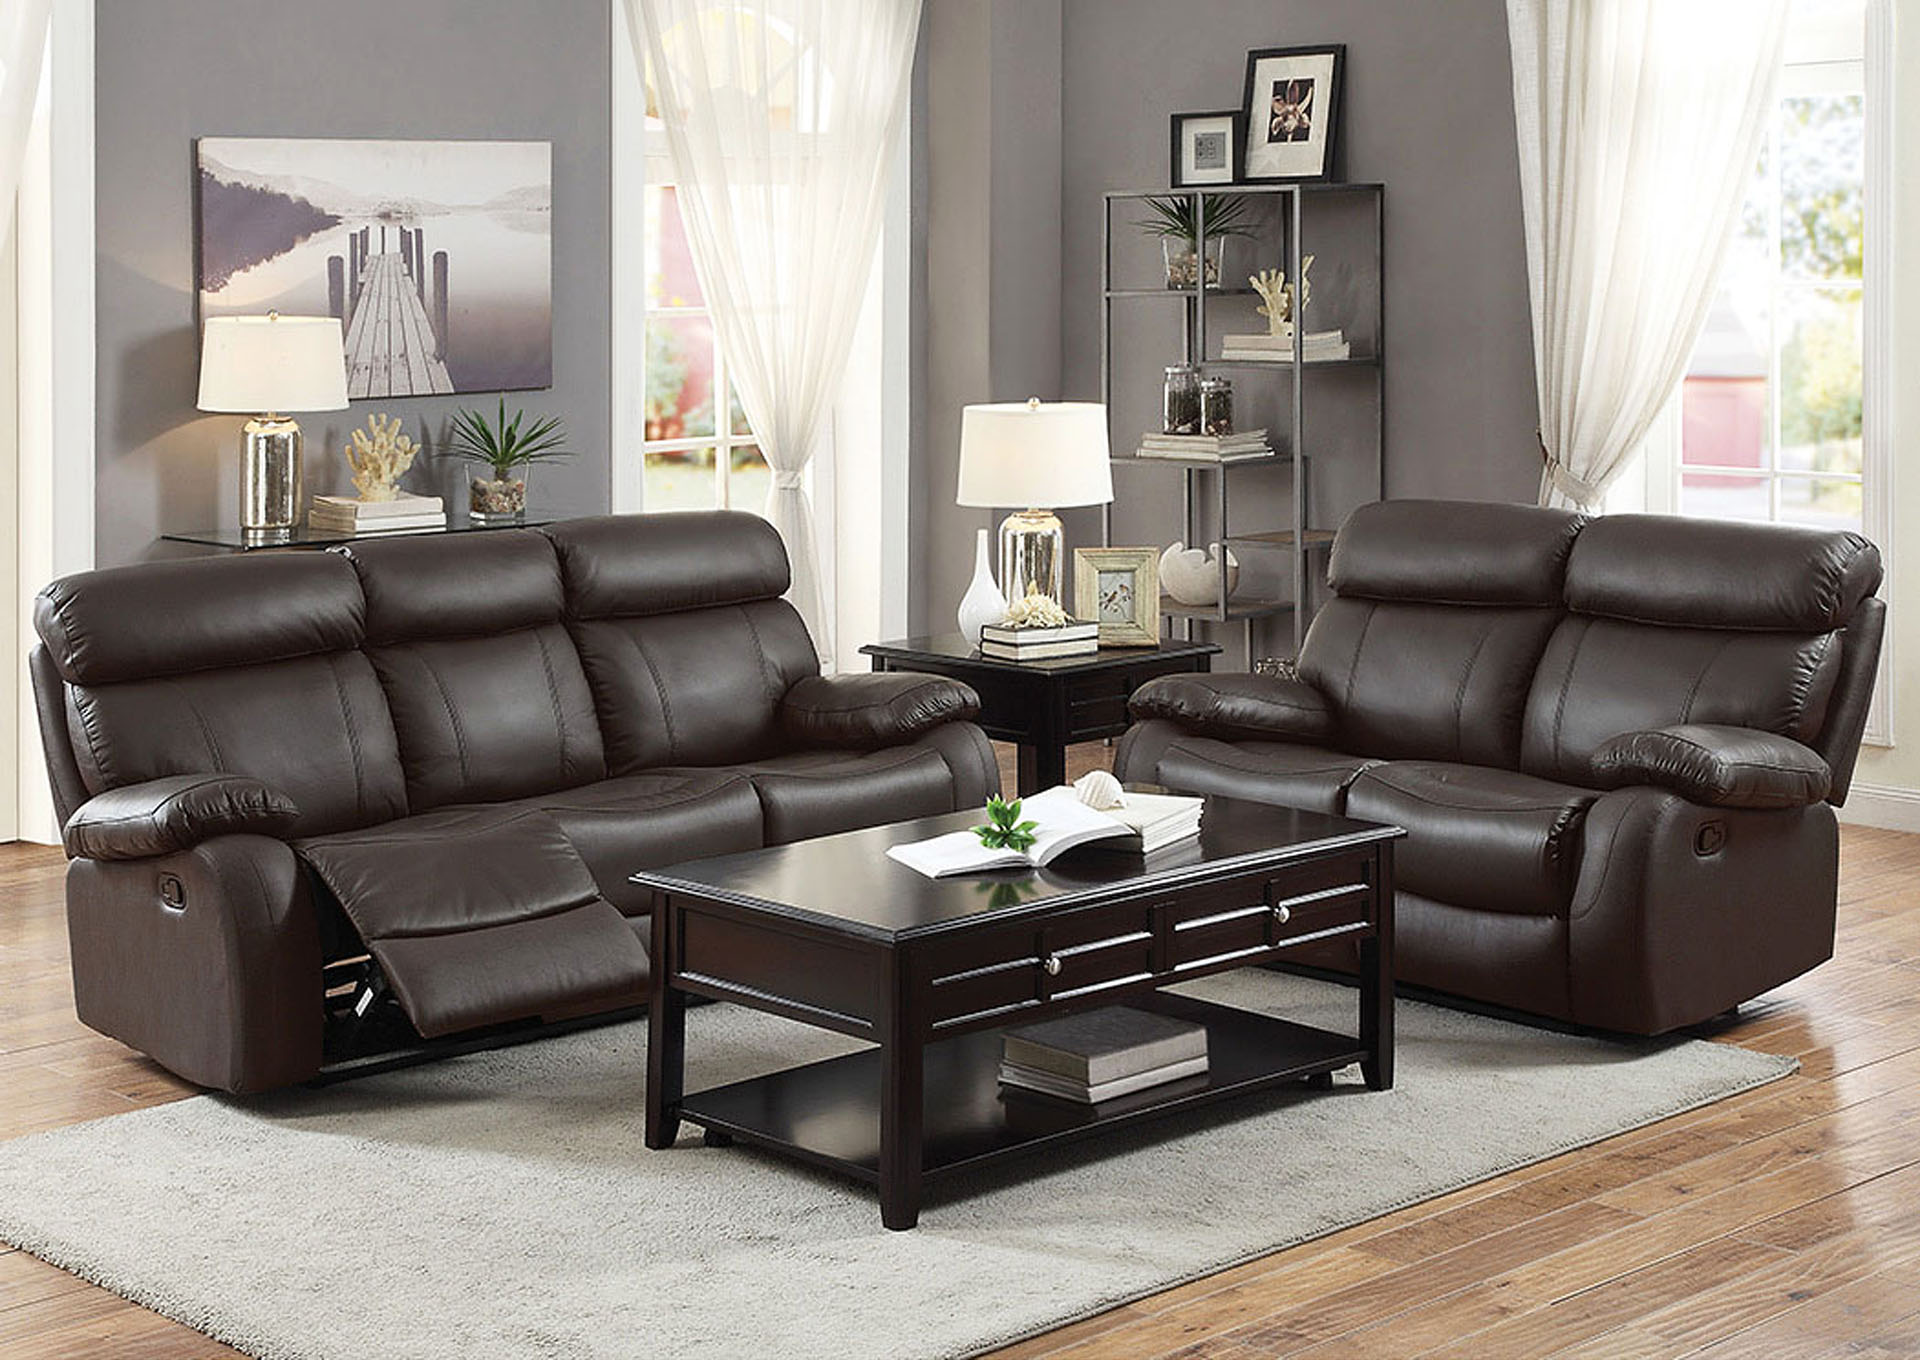 Double Reclining Sofa,Homelegance